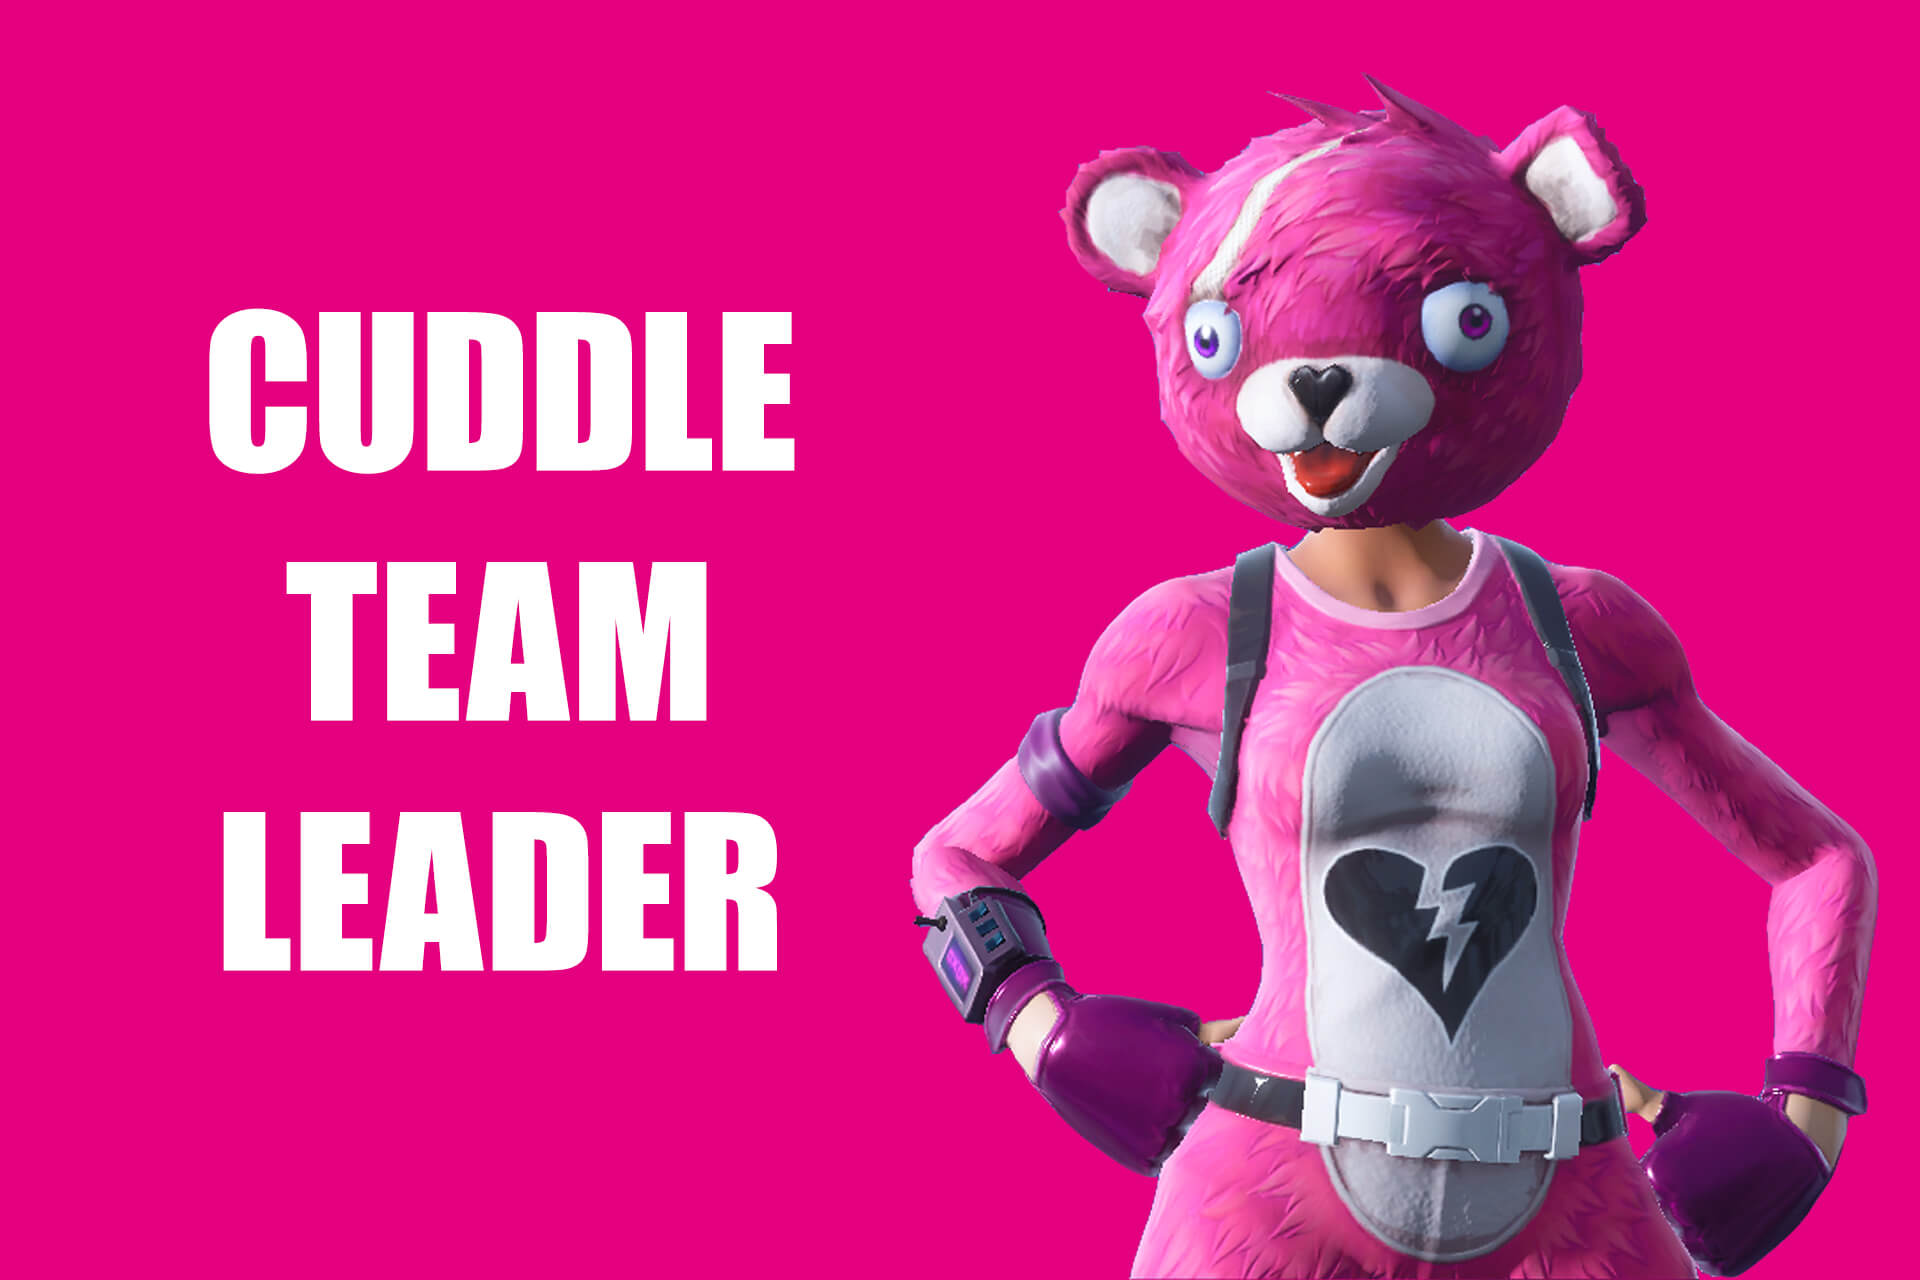 costume-cuddle-team-leader1